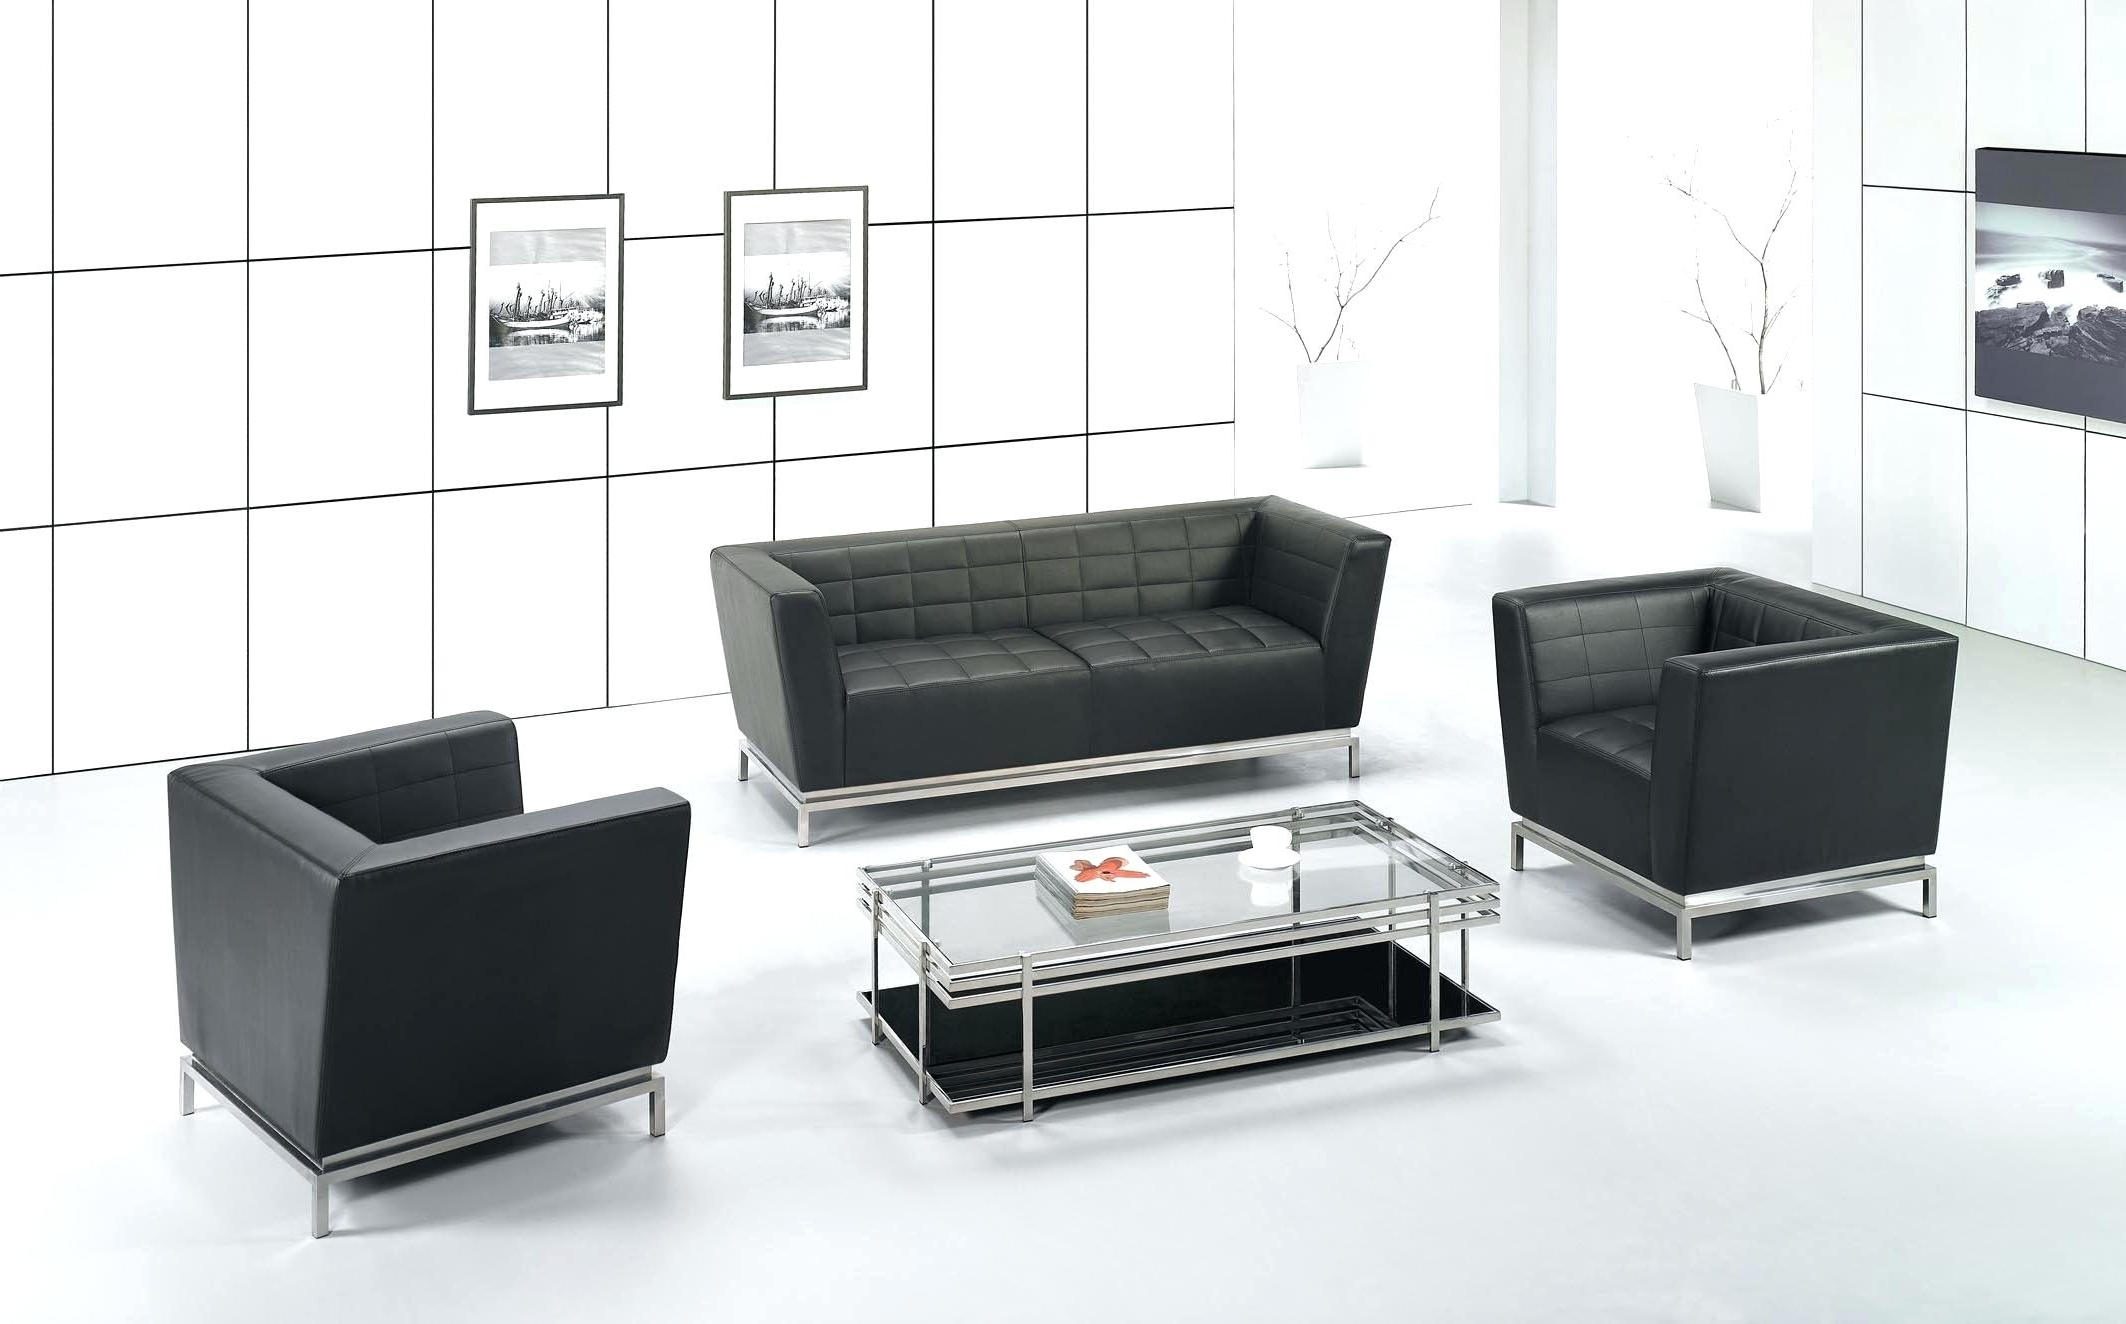 Office Sofas In Fashionable Decoration: Space Saving Guest Beds Modern Office Sofas Best Of (Gallery 14 of 20)